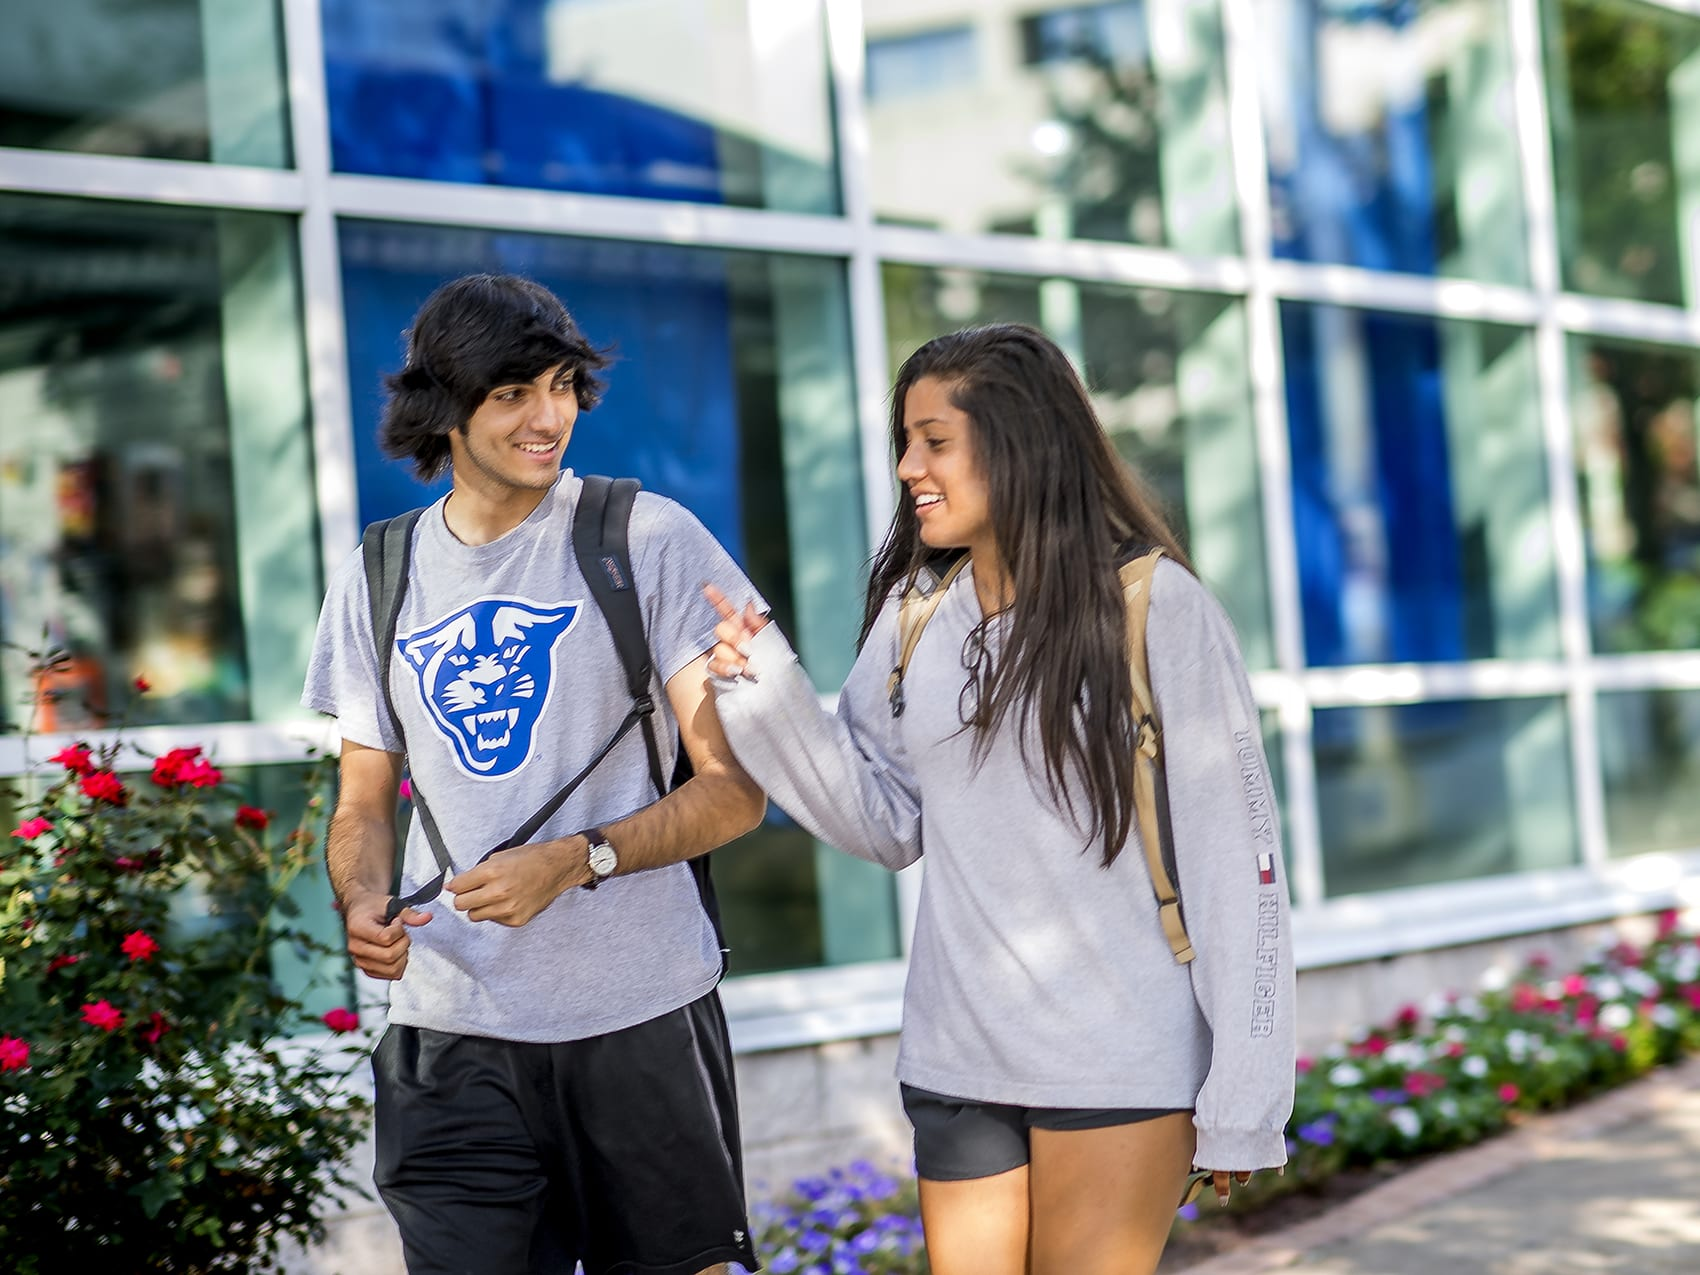 Students on campus at Georgia State University